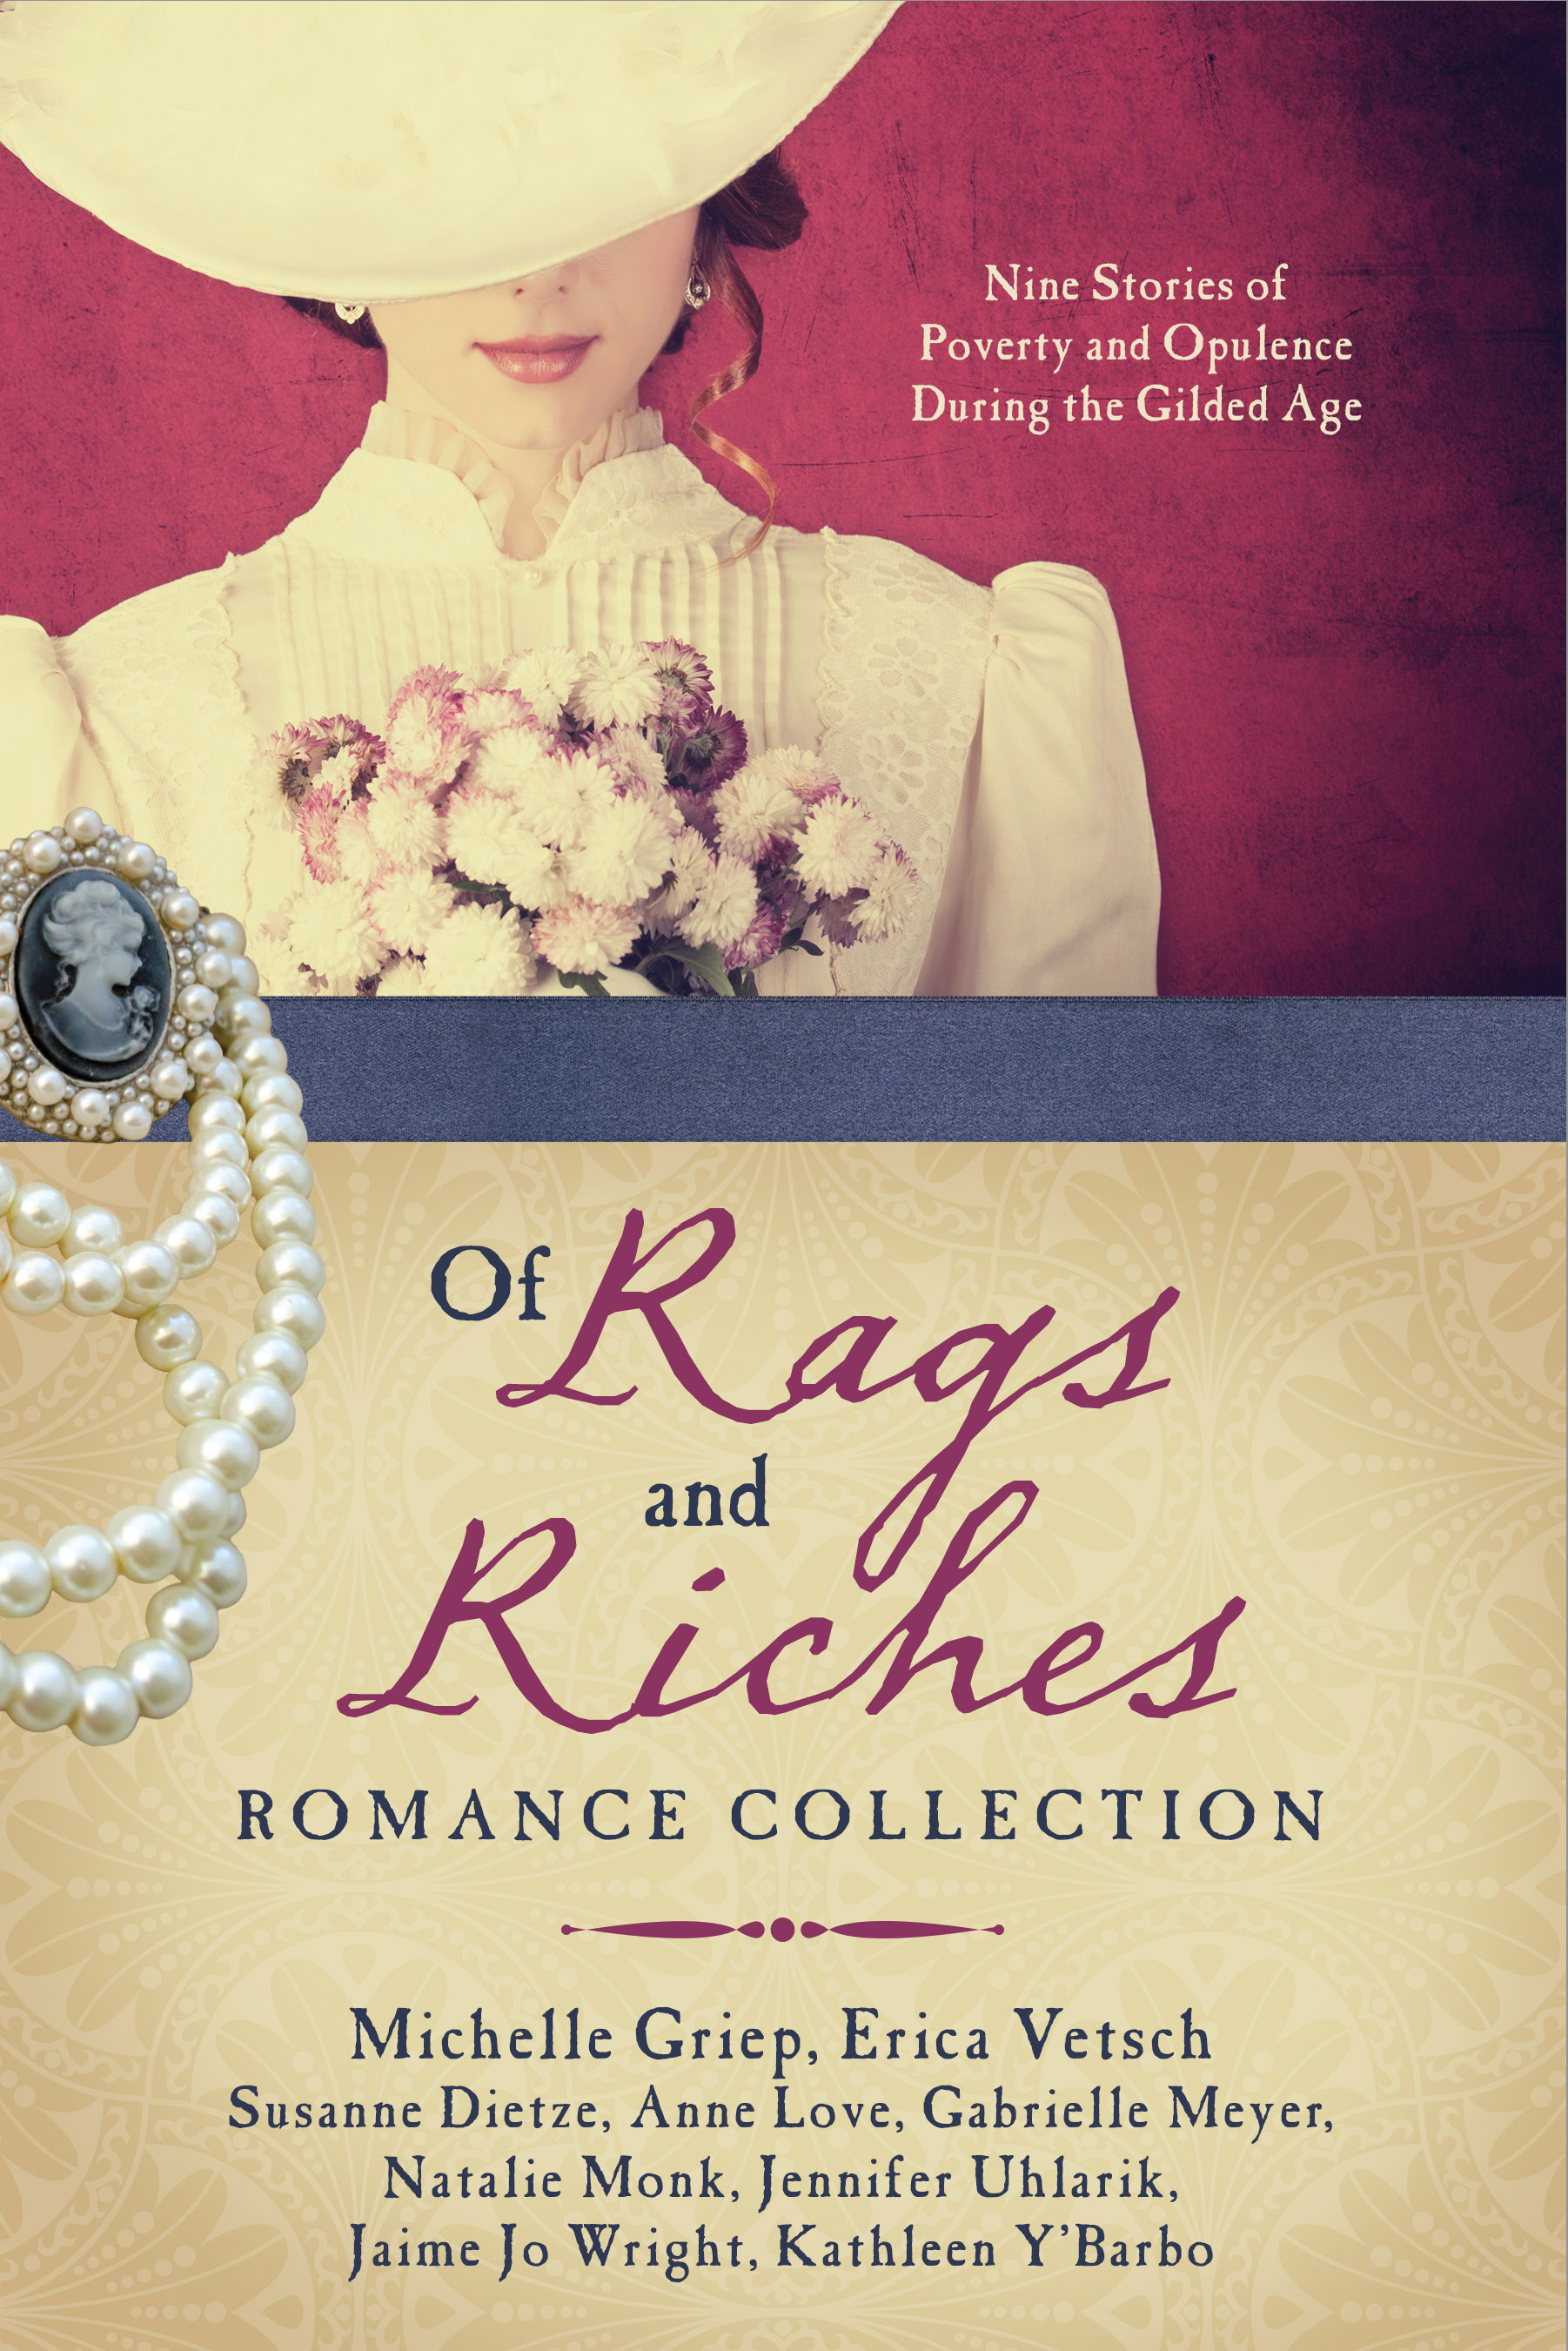 Of Rags and Riches Romance Collection Nine Stories of Poverty and Opulence During the Gilded Age